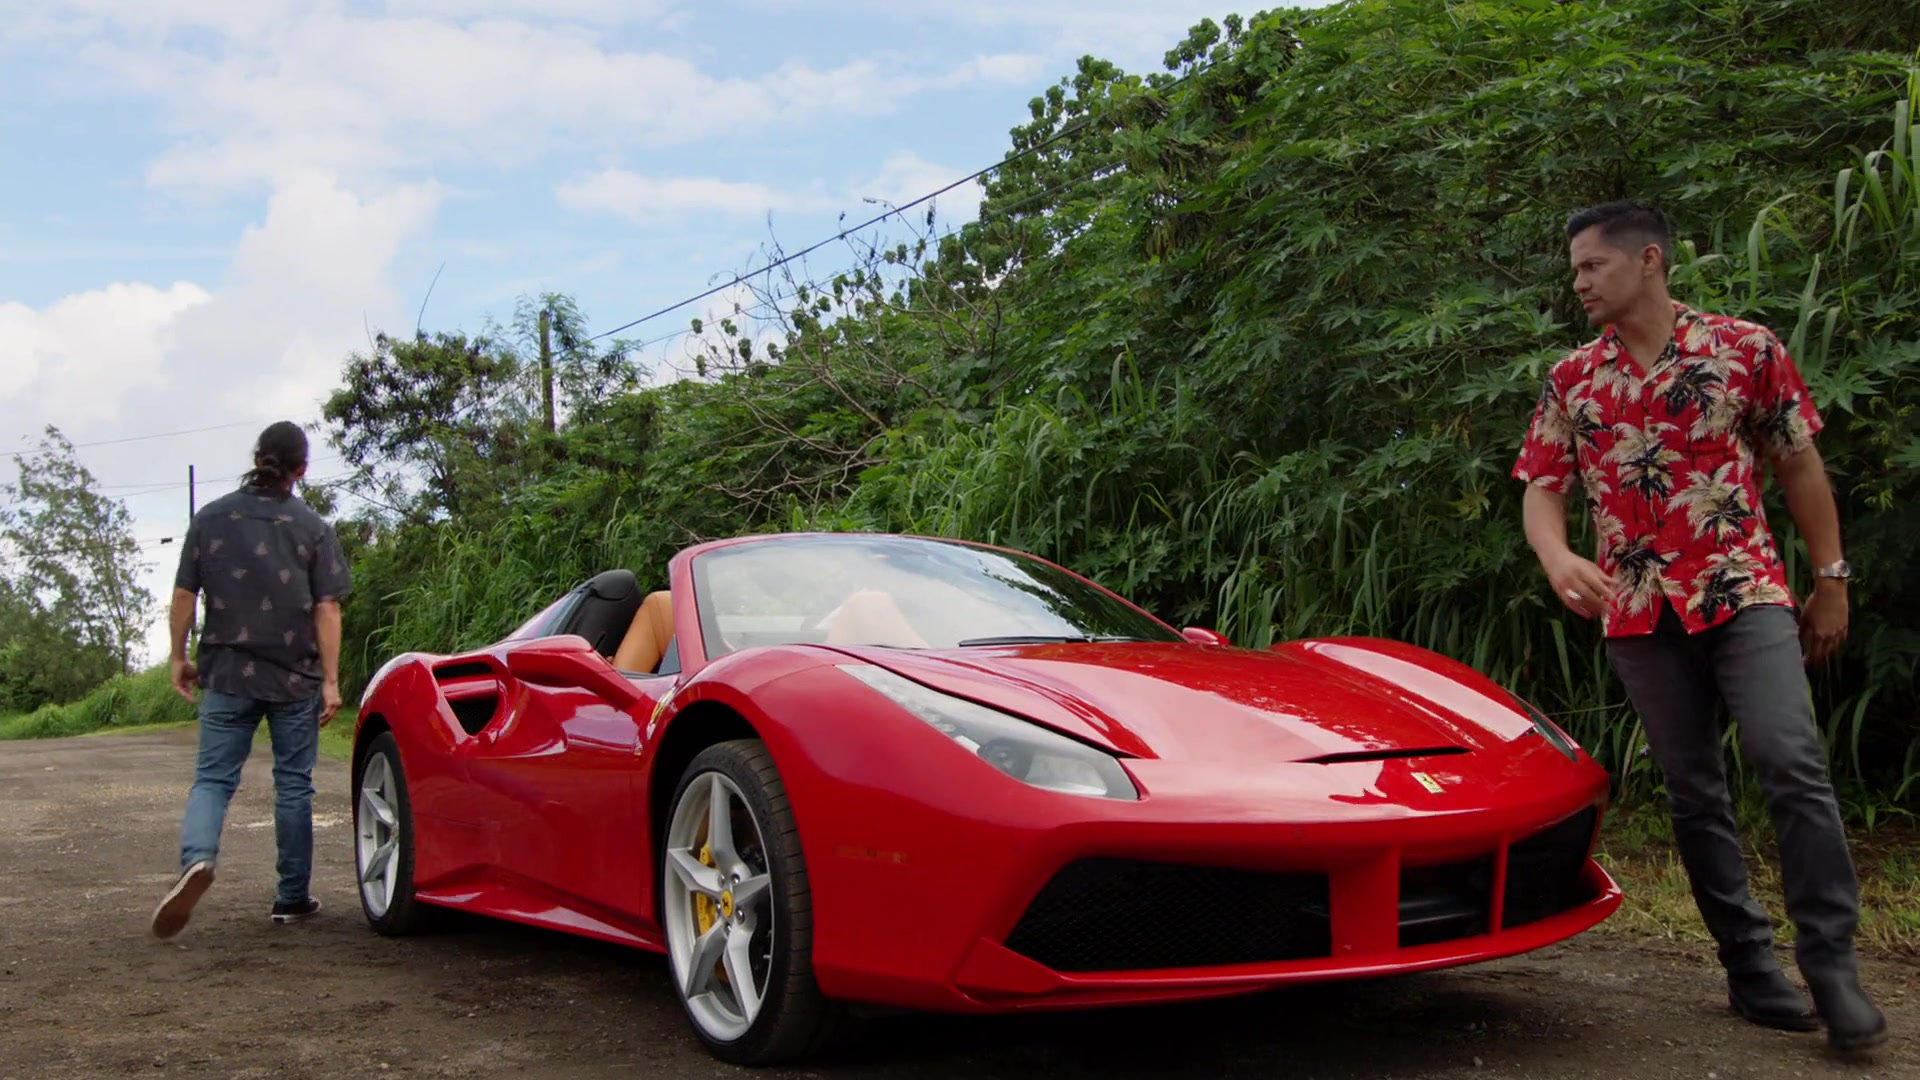 2017 Ferrari 488 Spider >> Ferrari 488 Spider Red Sports Car Used by Jay Hernandez in Magnum P.I. Season 1 Episode 8: The ...